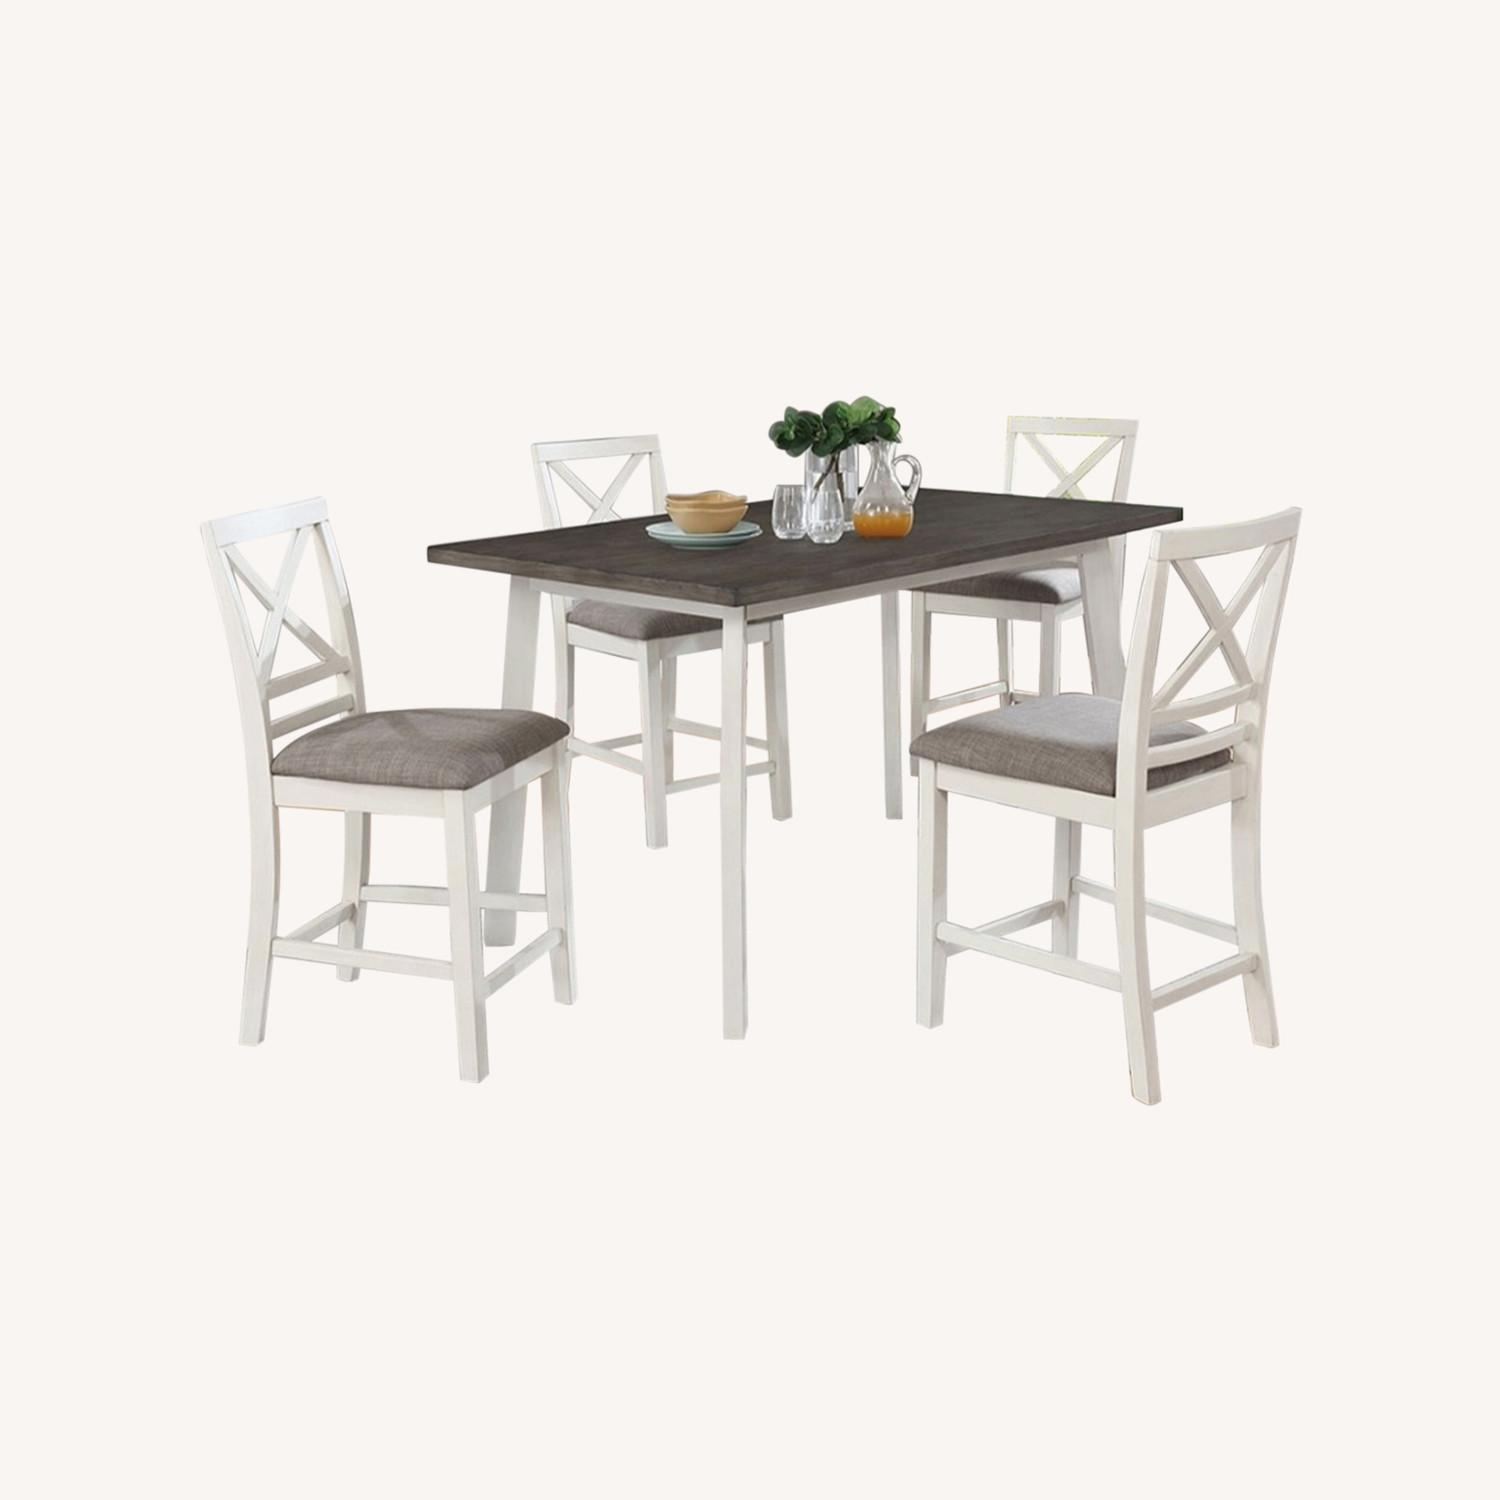 Modern 5-Piece Dining Set In Dark Truffle Finish - image-5